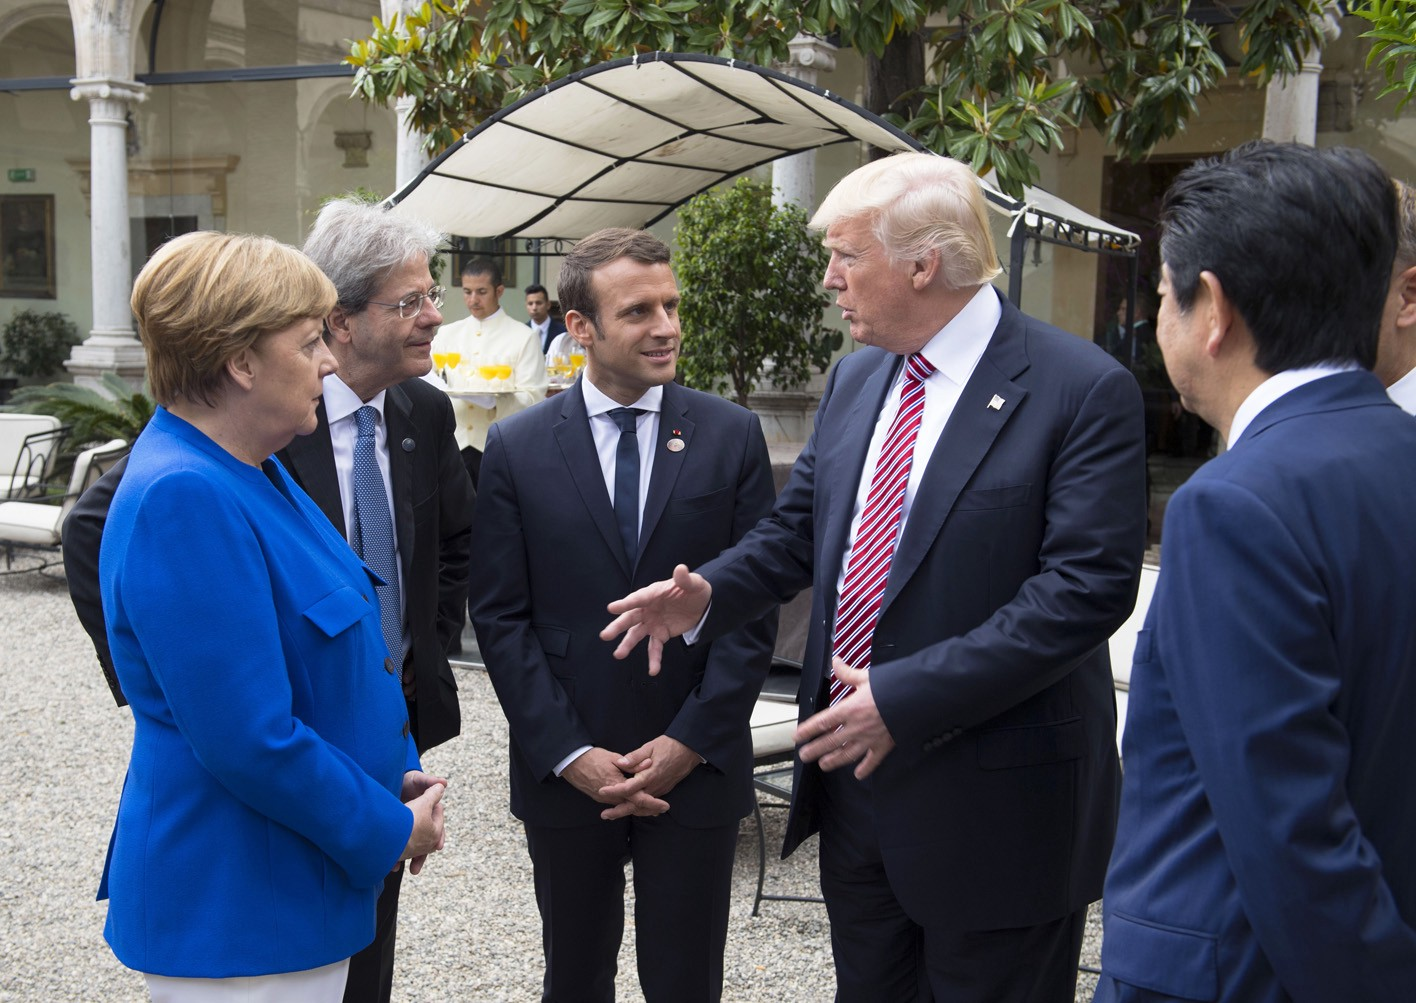 /g7-calls-for-tech-groups-to-fight-terrorism-online-34bf99cbdcc8 feature image